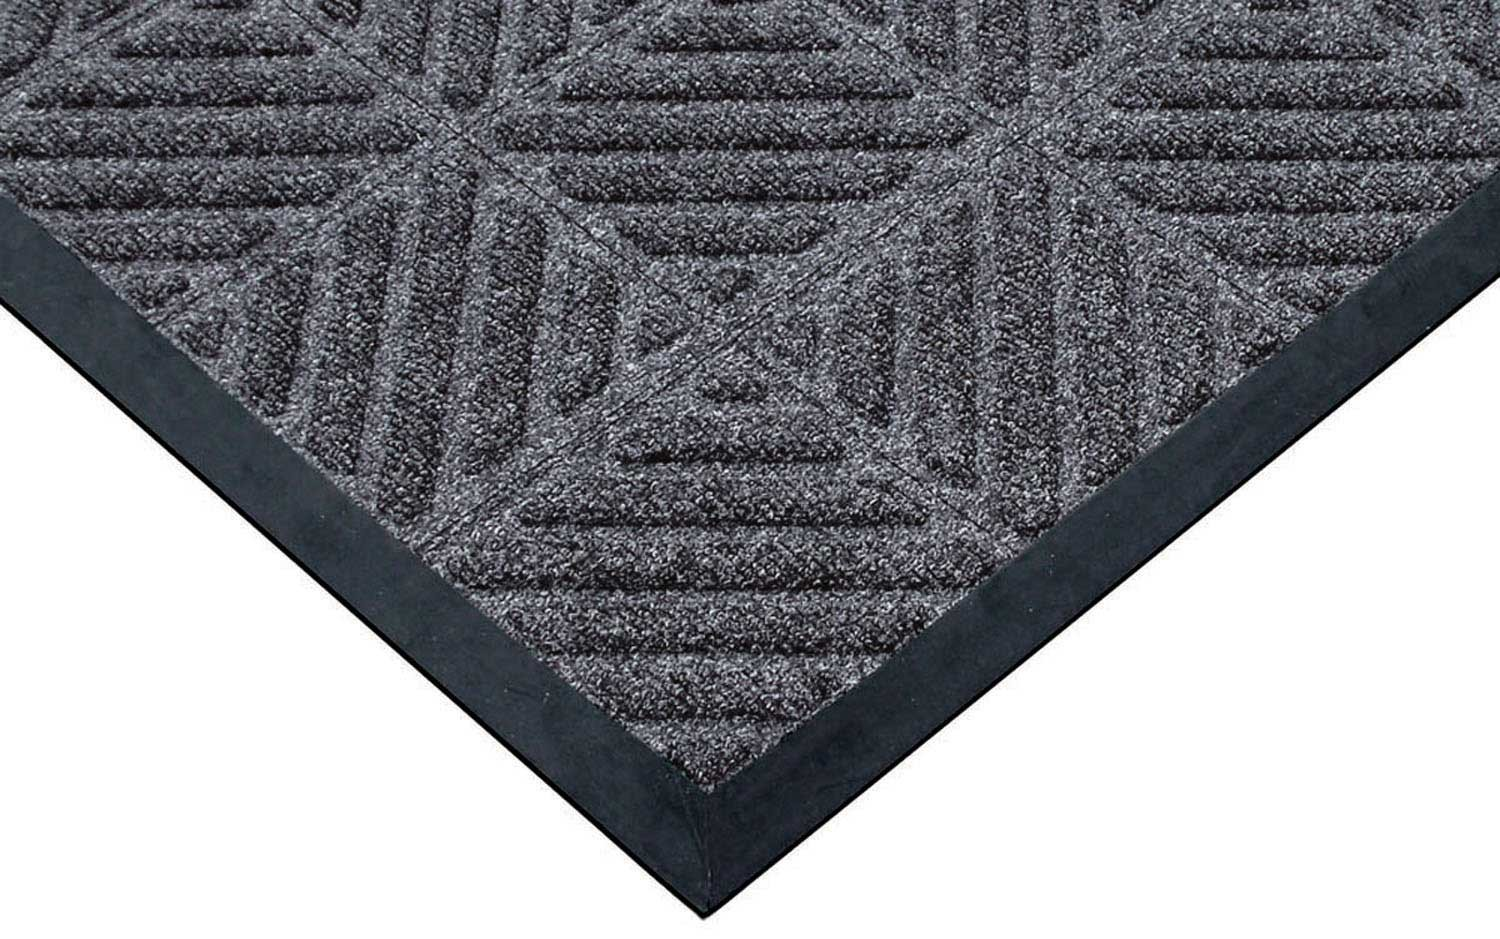 room breathtaking foam plastic me near rugs floor depot mat sale area at outdoor home size lowes under for of mats clearance discount full living